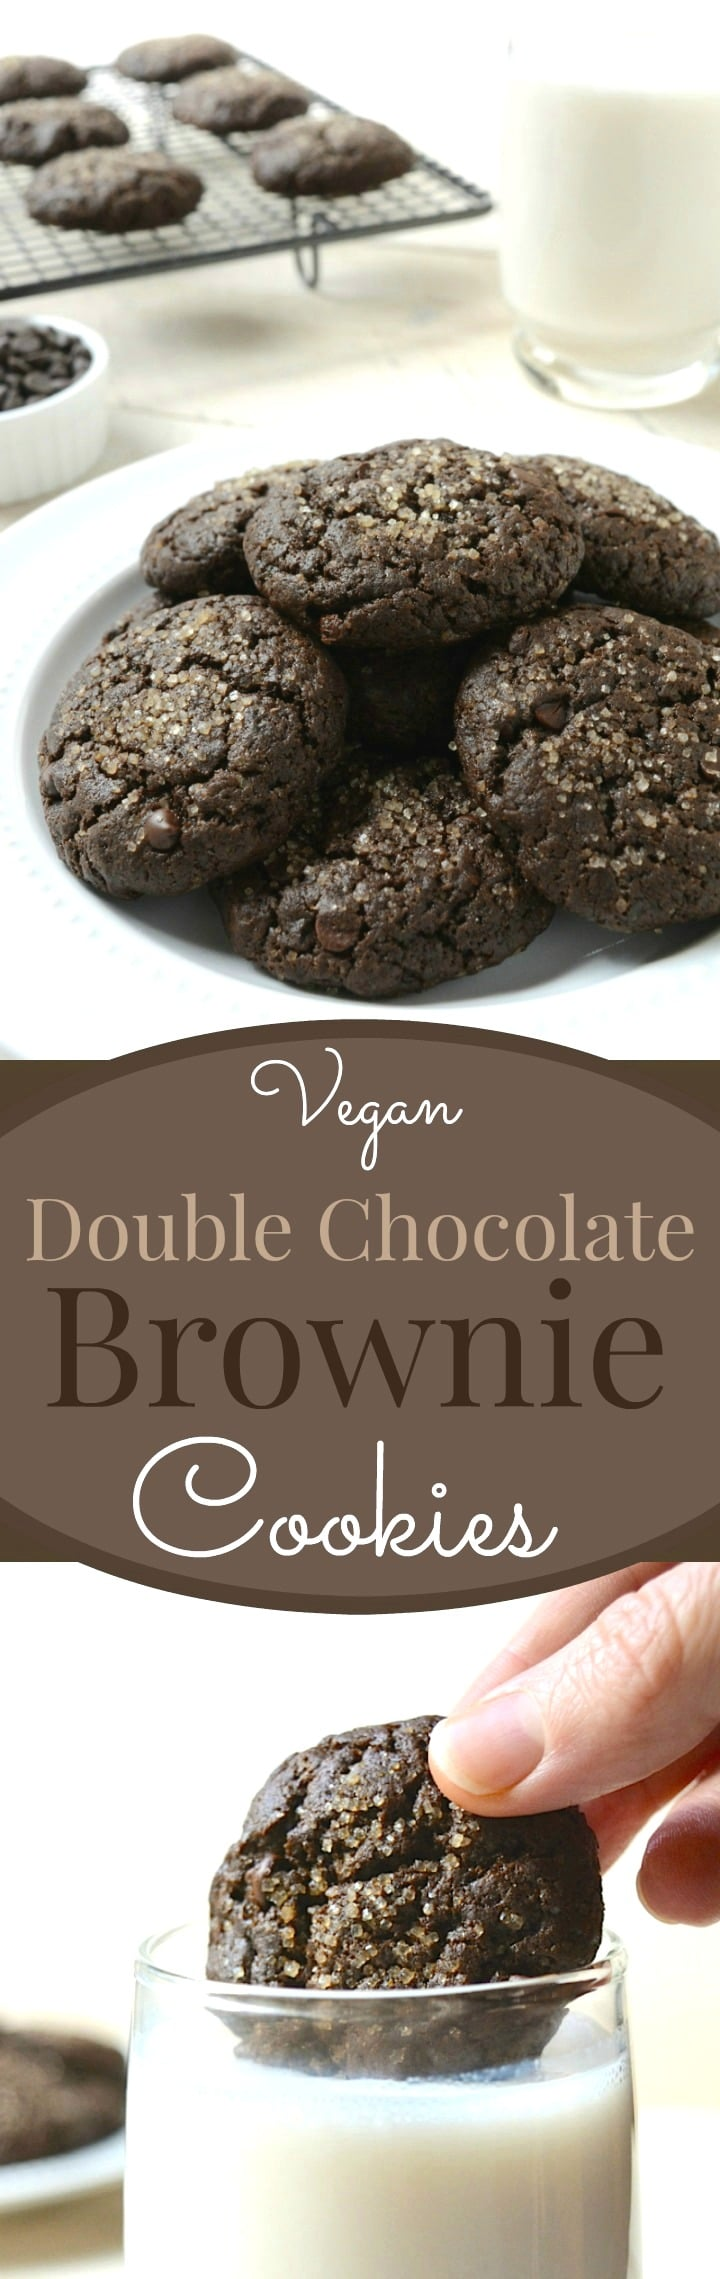 Double Chocolate Brownie Cookies are a decadent brownie crammed into a cookie then loaded with chocolate chips.  They are egg-free, dairy-free and made with 8 simple ingredients you probably have on hand! #veganrecipe #vegancookies #chocolate #vegankids